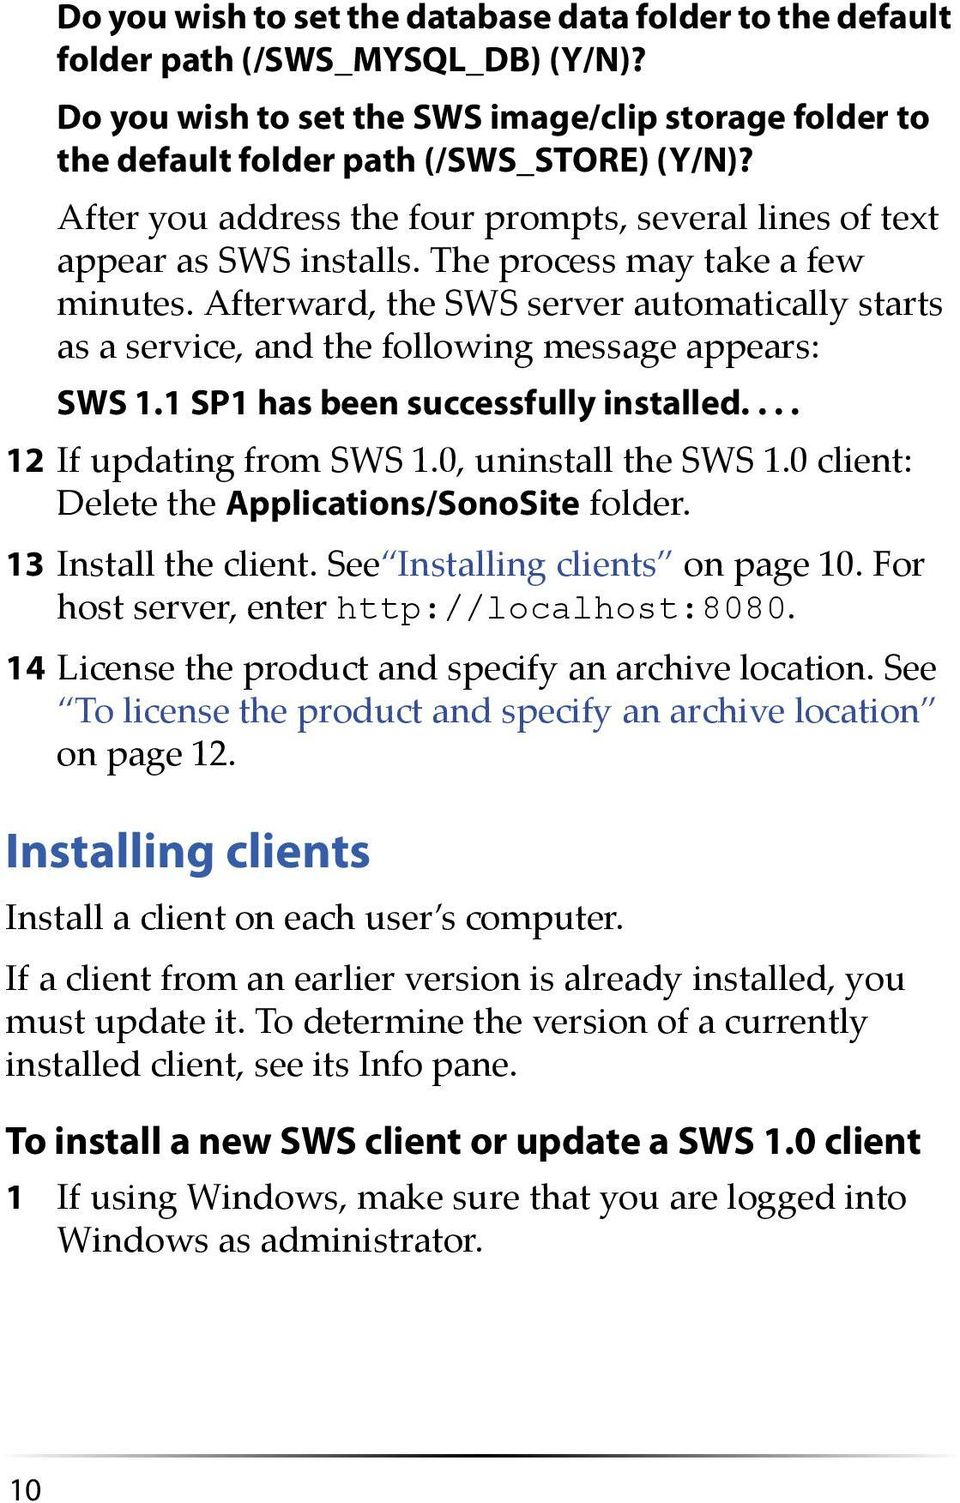 Afterward, the SWS server automatically starts as a service, and the following message appears: SWS 1.1 SP1 has been successfully installed.... 12 If updating from SWS 1.0, uninstall the SWS 1.